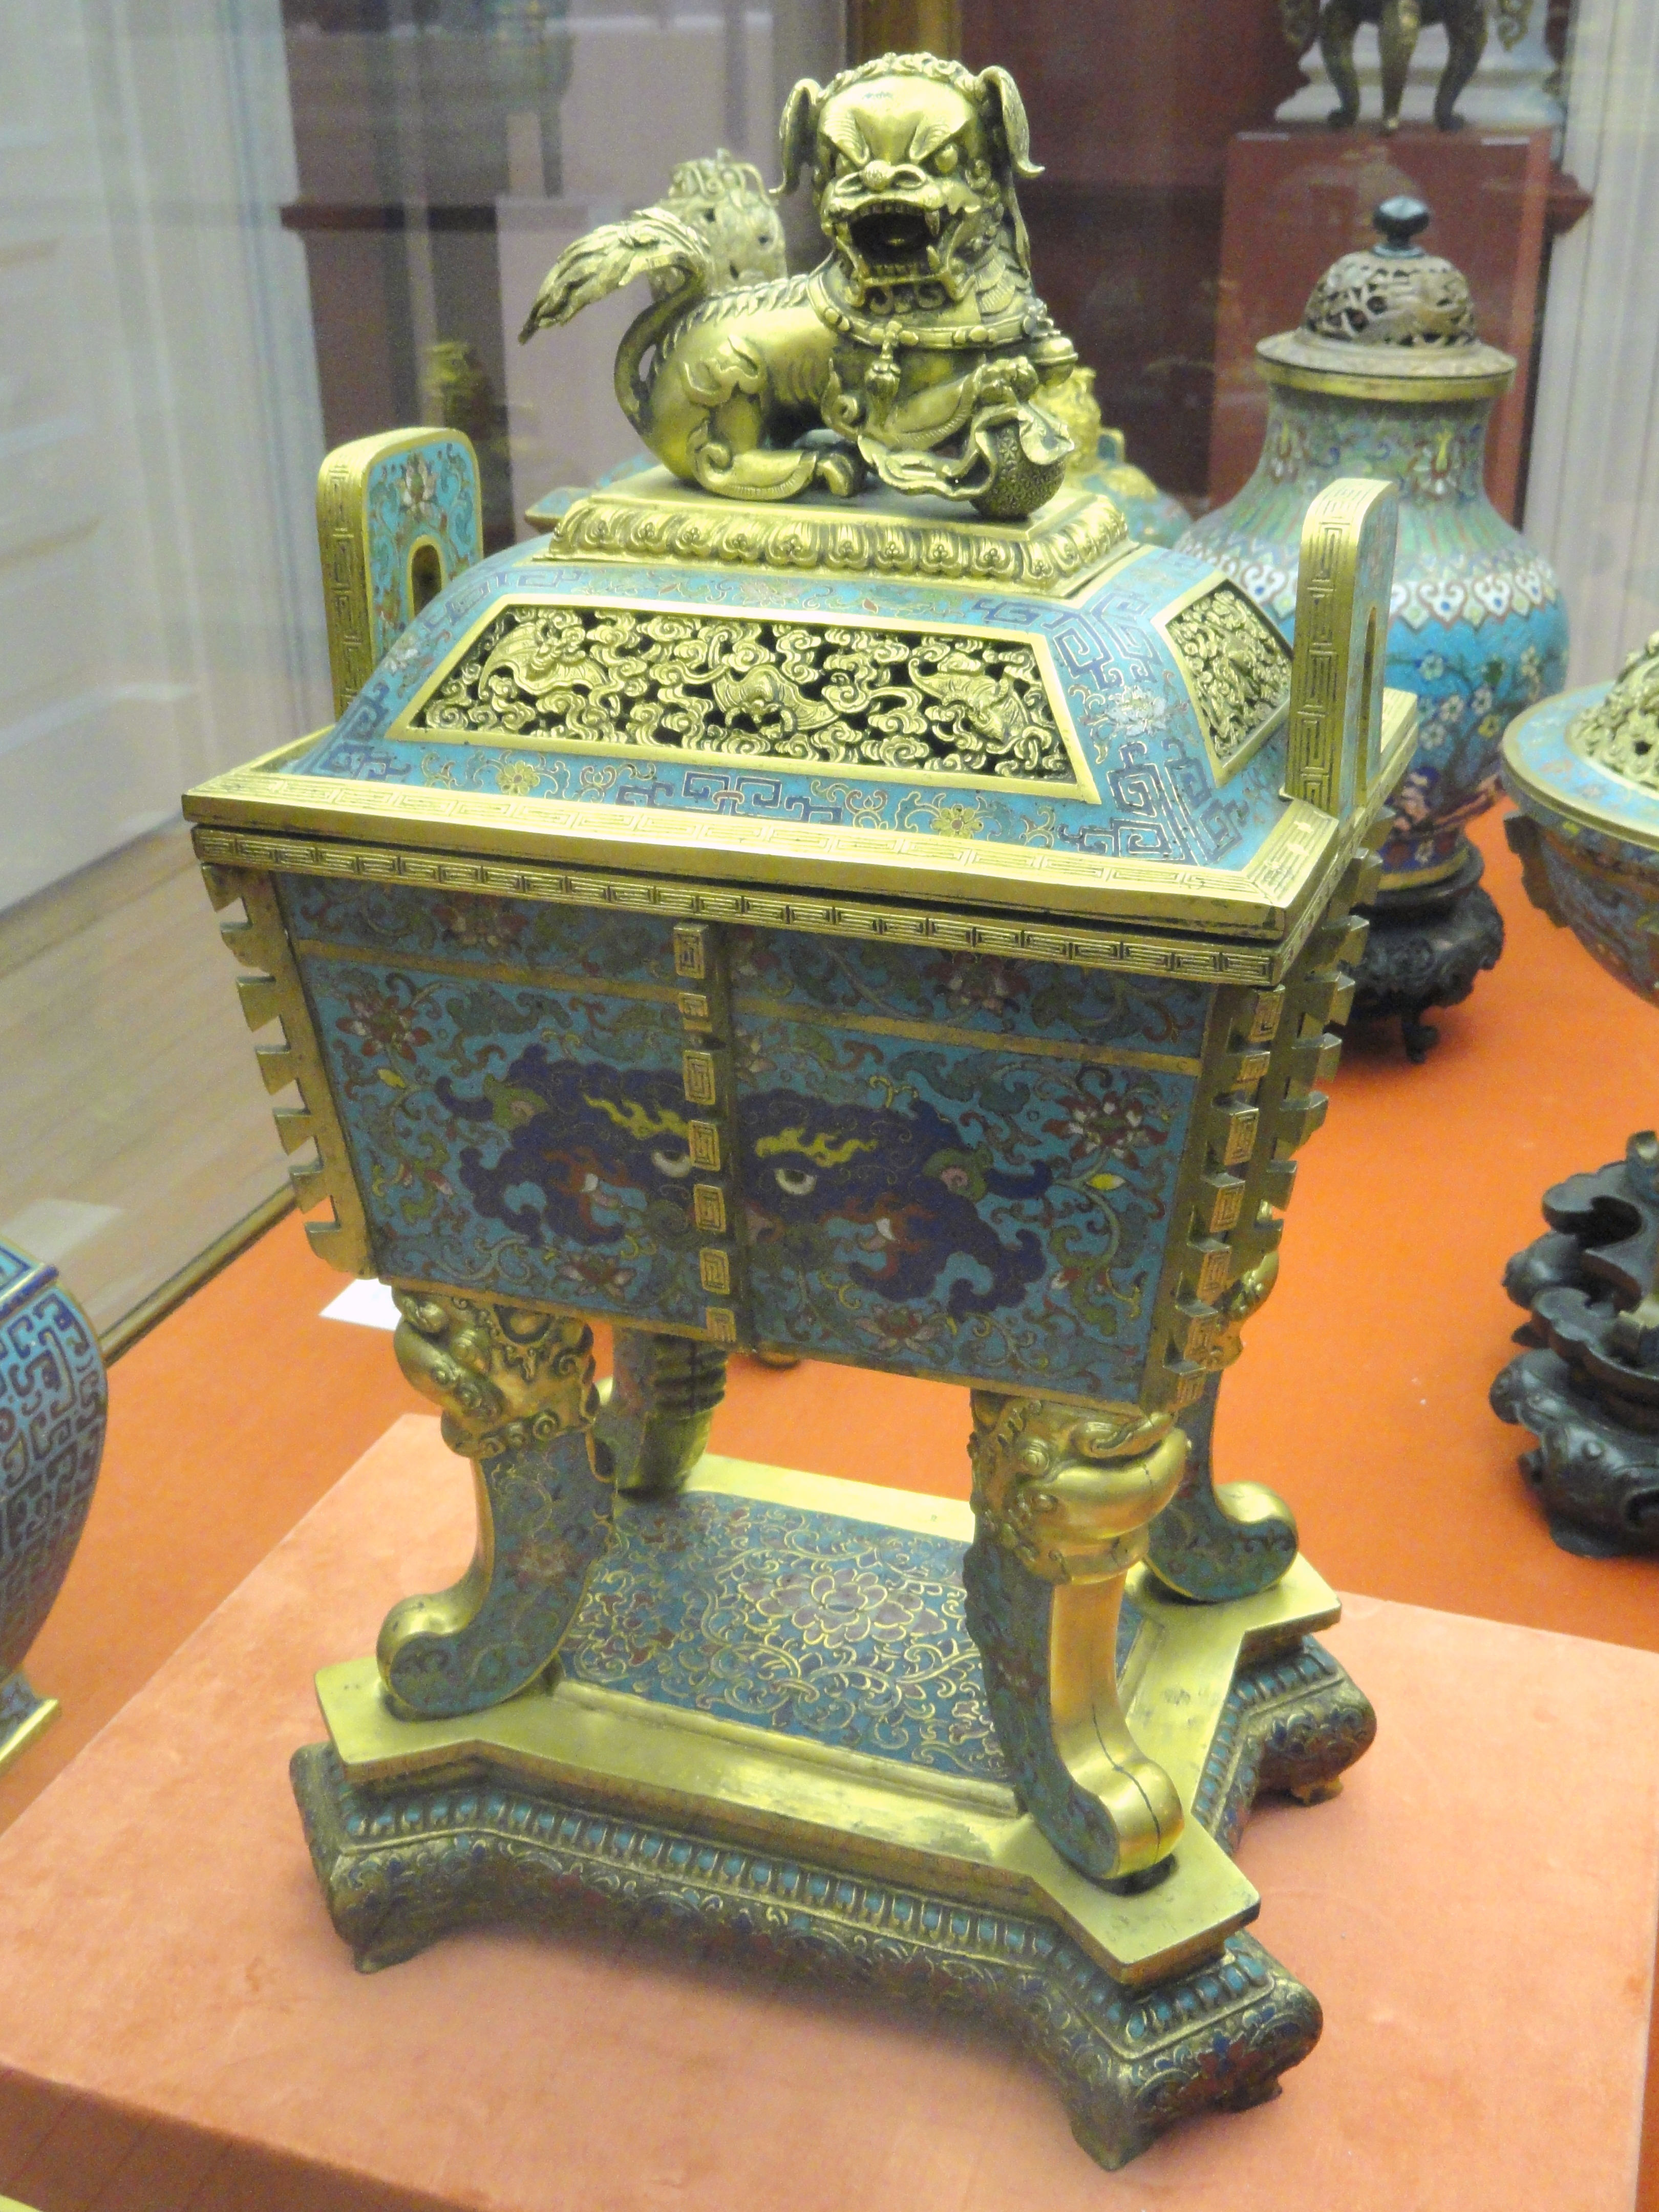 File Incense Burner With Taoist Symbols 1736 1795 Chinese Cloisonne Collection George Walter Vincent Smith Art Museum Dsc03720 Jpg Wikimedia Commons